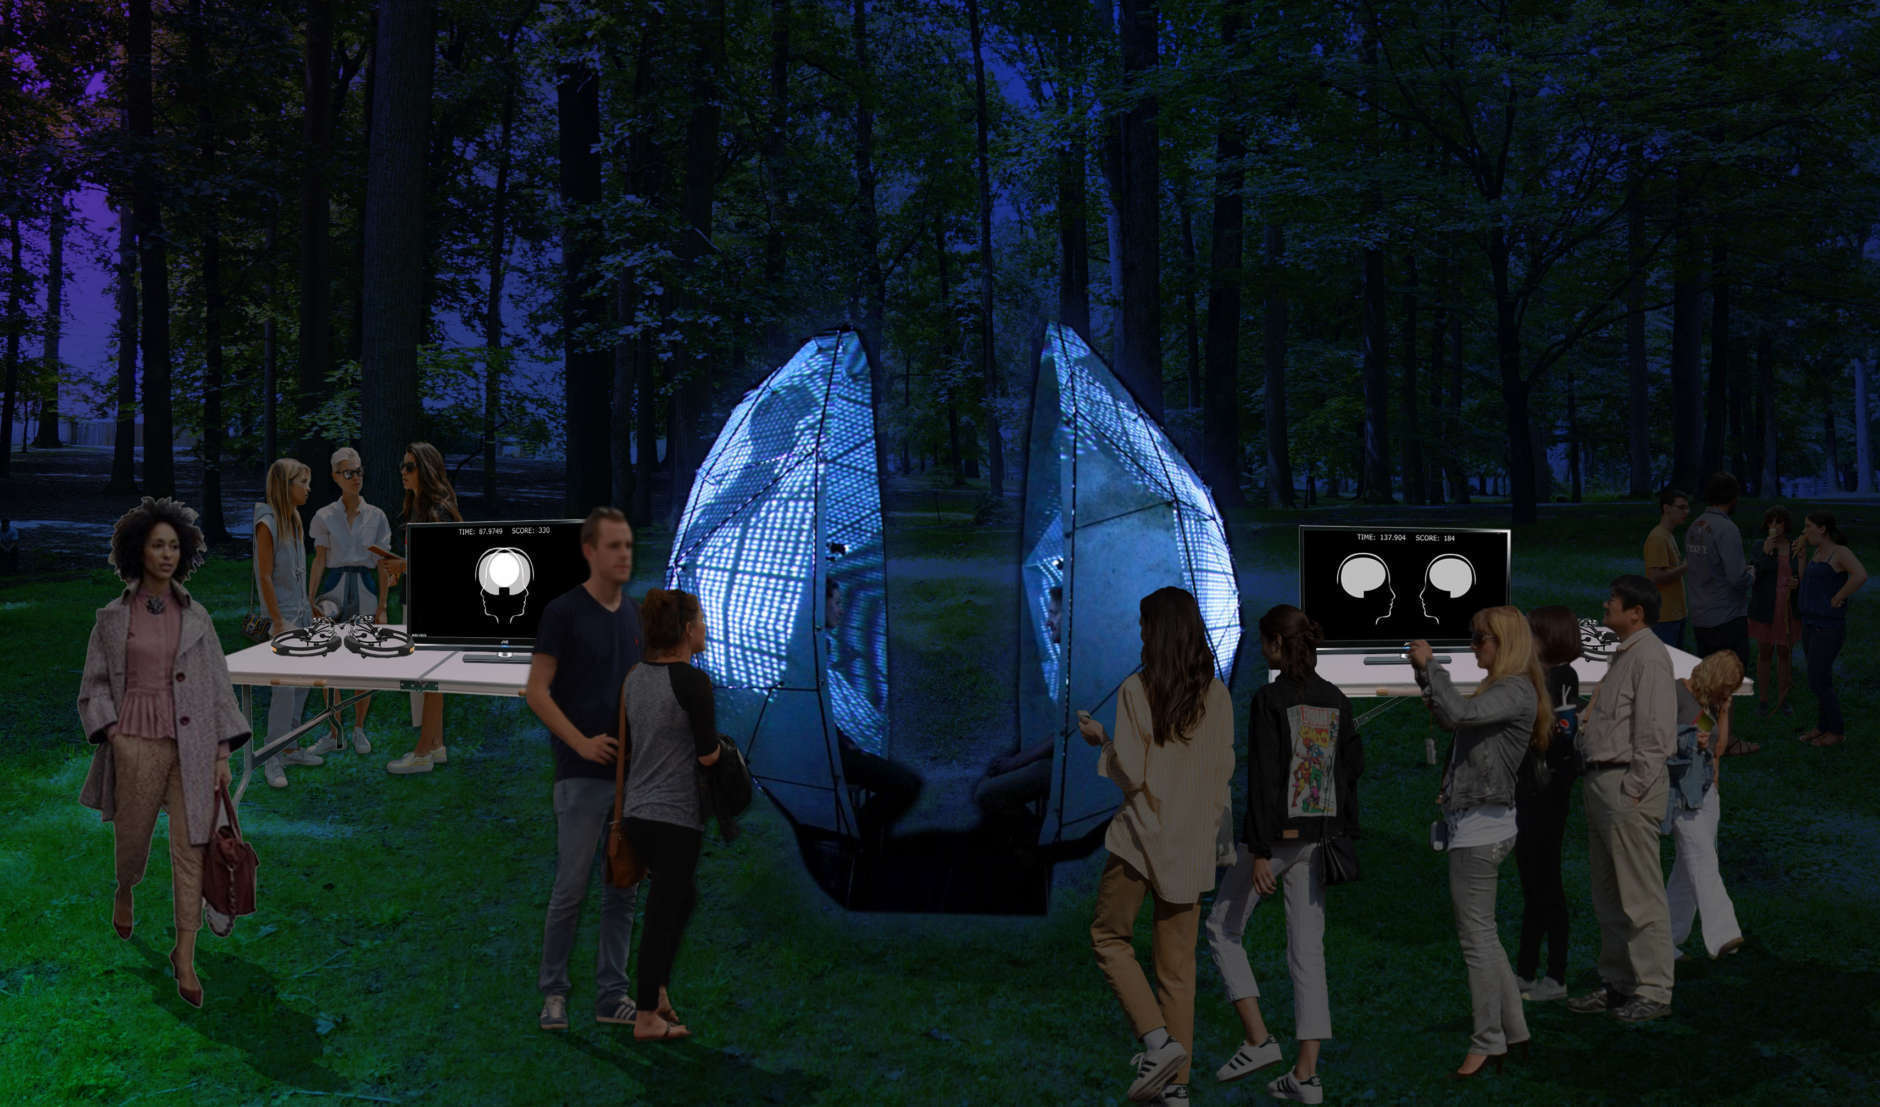 "The Mutual Wave Machine, is an interactive neurofeedback installation by Suzanne Dikker that organizers said ""embodies the elusive notion of 'being on the same wavelength' with another person through brainwave synchronization."" (Rendering courtesy Wild Dogs International)"